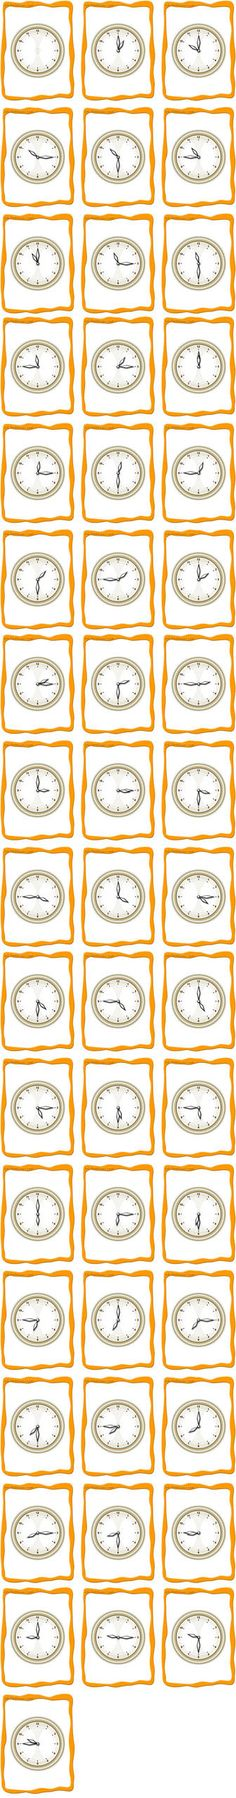 FlashCards for telling time